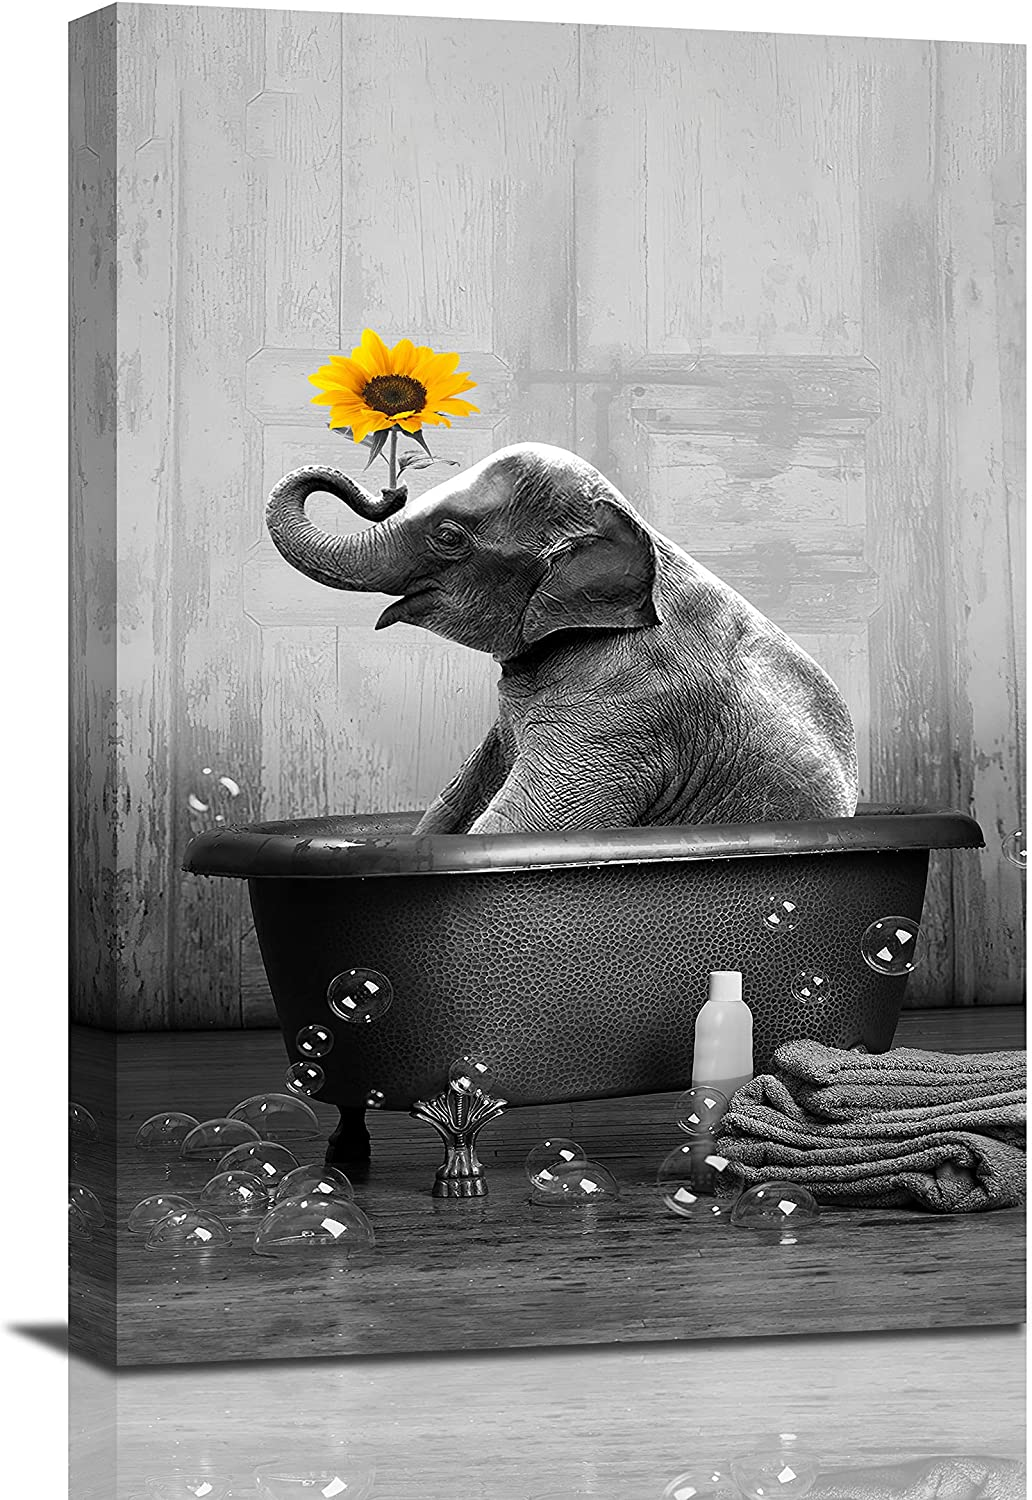 Sunflower Elephant Canvas Wall Art Funny Animal Elephant Bathing In The Bathtub Wall Decor Black and White Paintings Pictures Framed Modern Artwork For Bathroom Living Room Bedroom 12x18 Inch